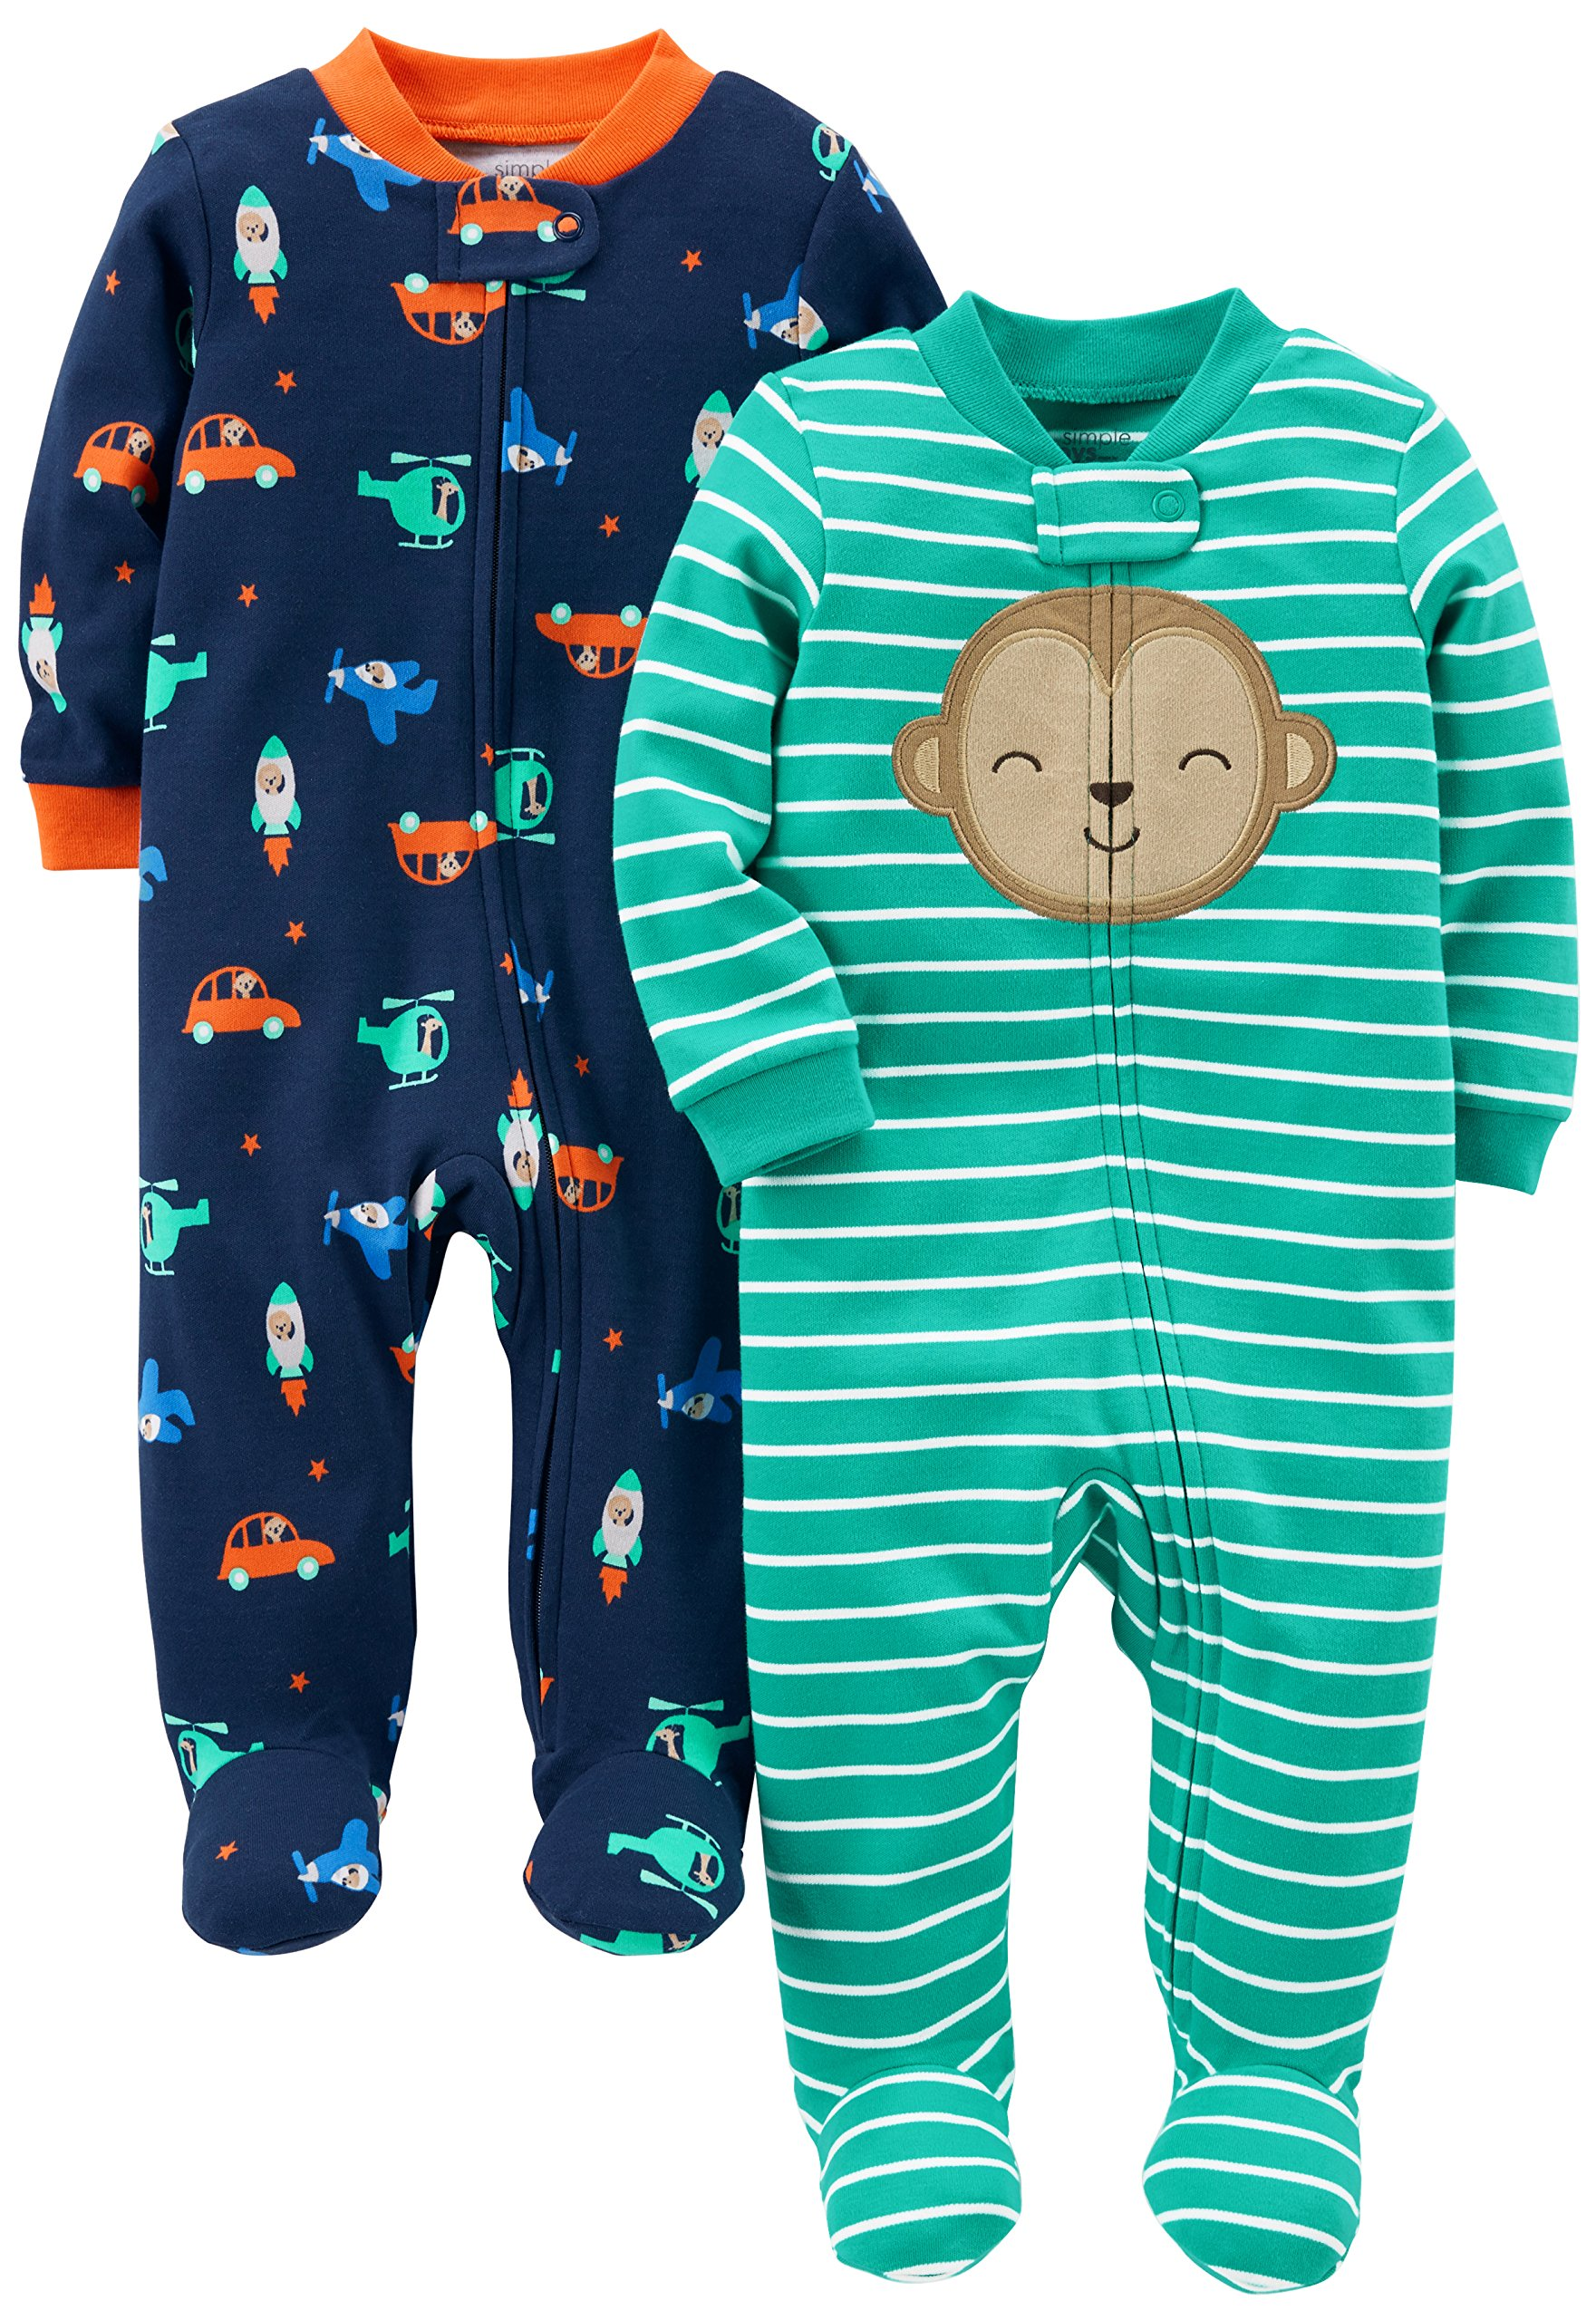 Simple Joys by Carter's Baby Boys' 2-Pack Cotton Footed Sleep and Play, Monkey/Vehicles, 3-6 Months by Simple Joys by Carter's